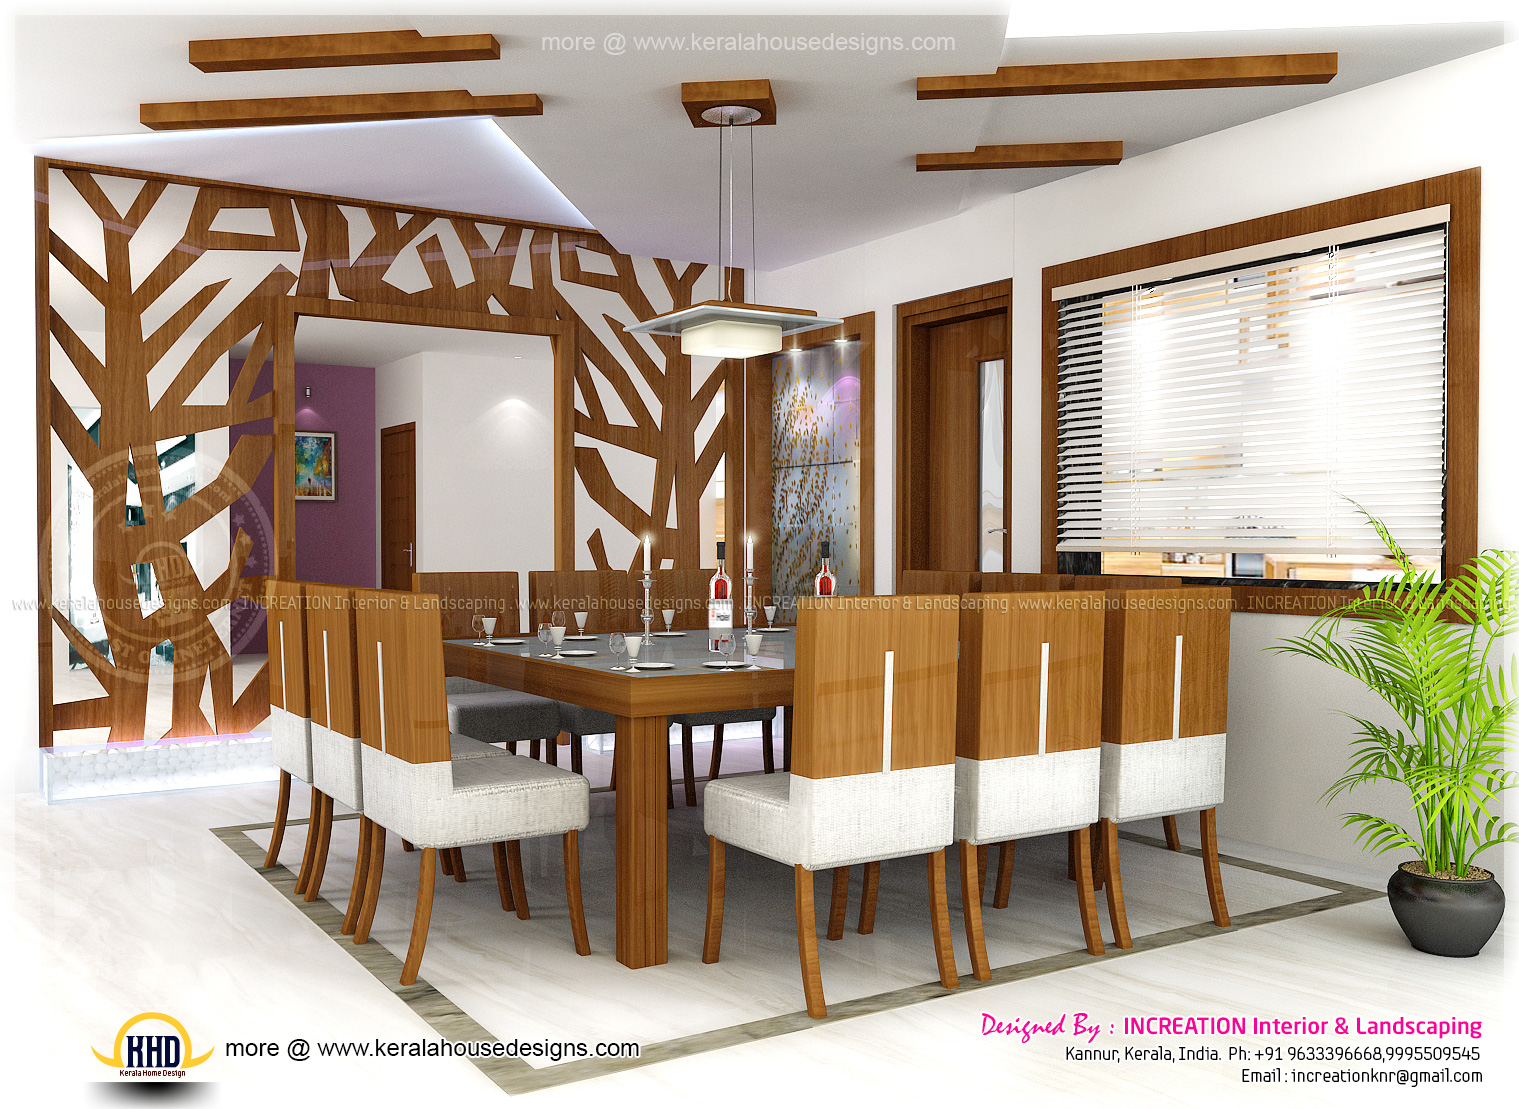 Interior designs from kannur kerala home kerala plans for Interior designs com